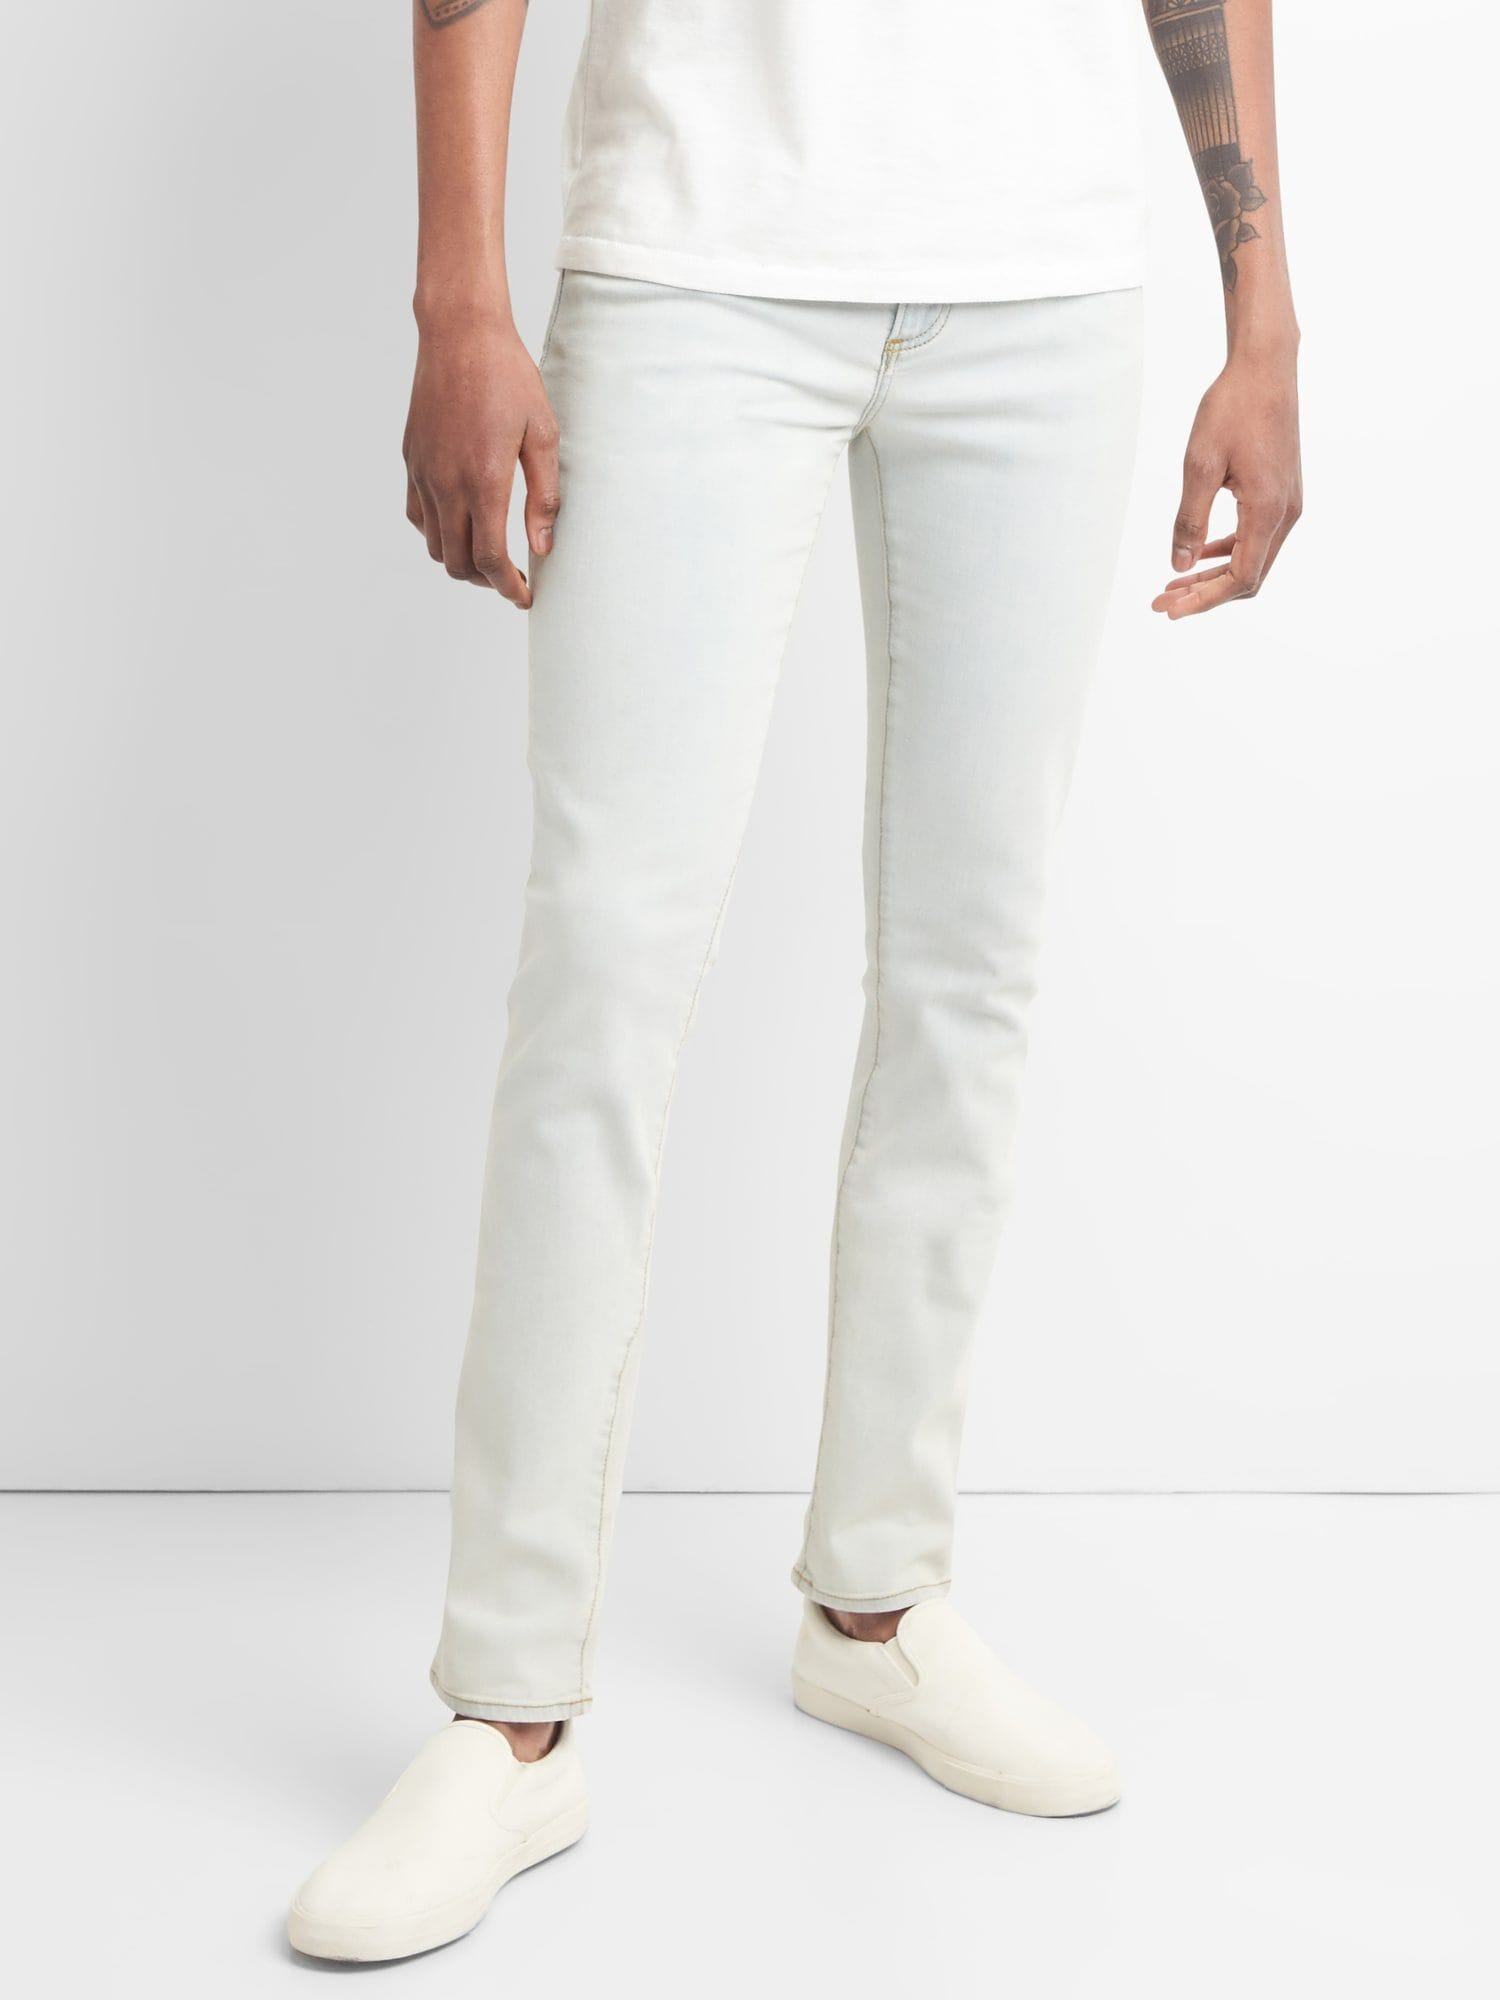 5d57a62f802 Wearlight Skinny Jeans with GapFlex